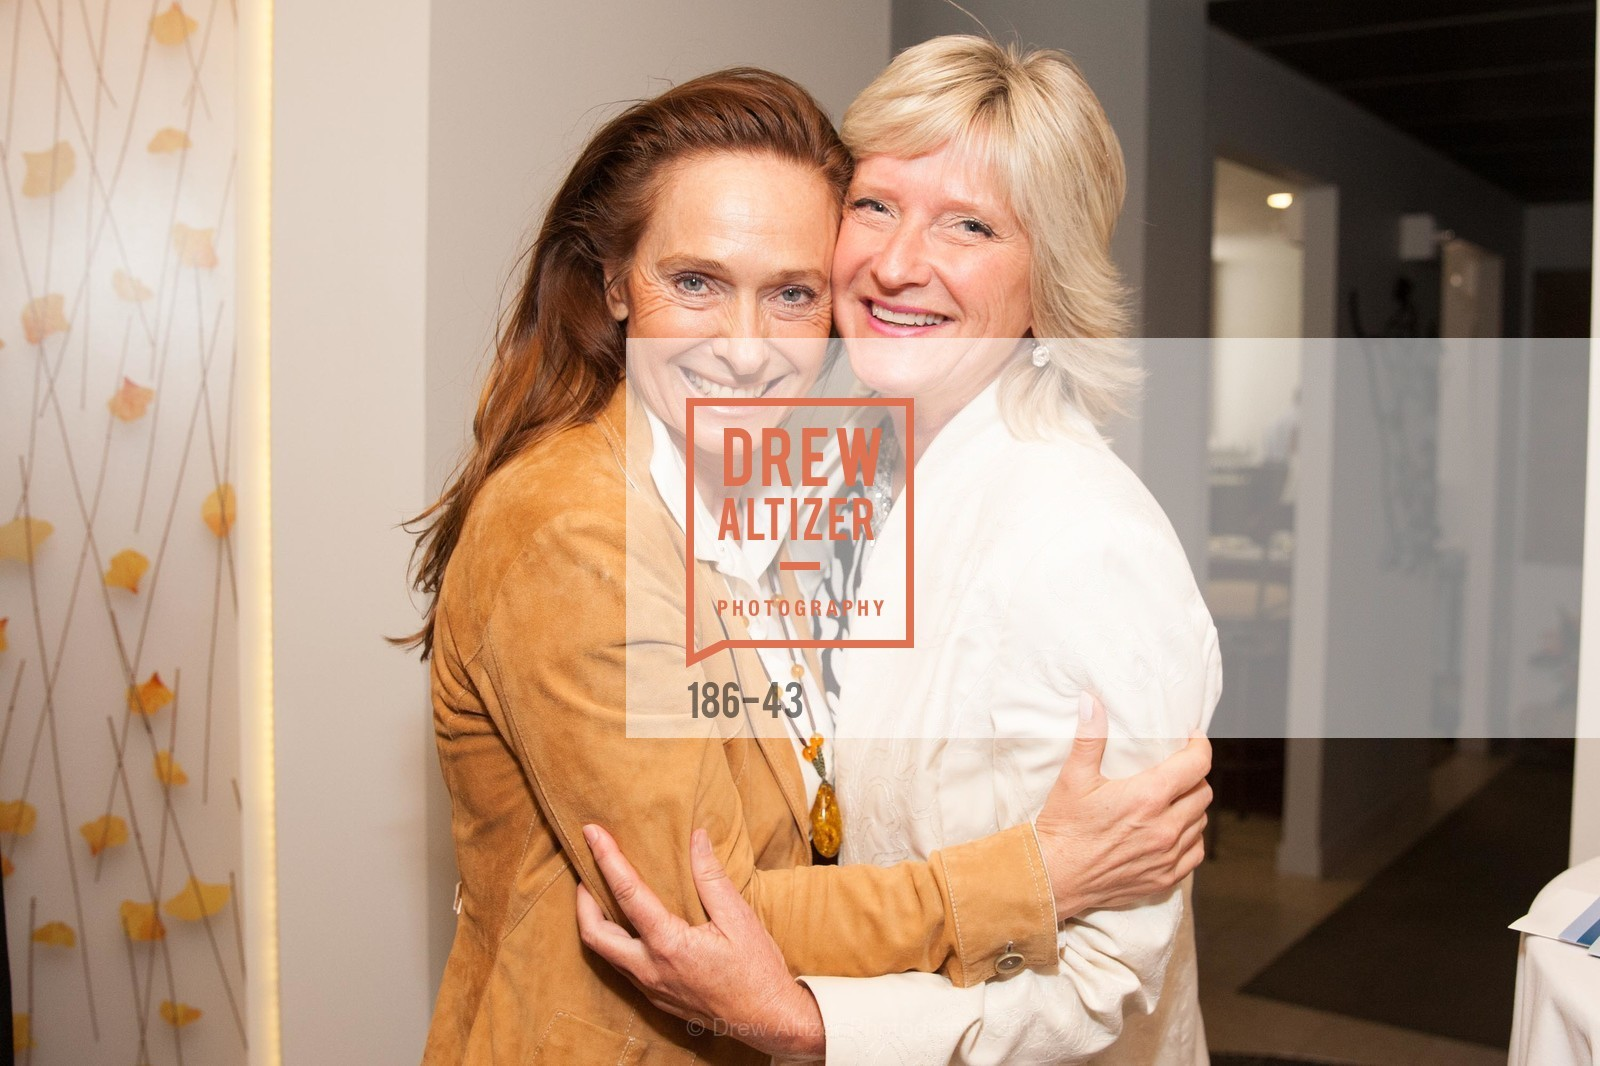 Elisabeth Thieriot, Linda Kempis, EPI CENTER MedSpa Anniversary and Launch of REPLETE, Epi Center MedSpa, April 21st, 2015,Drew Altizer, Drew Altizer Photography, full-service agency, private events, San Francisco photographer, photographer california